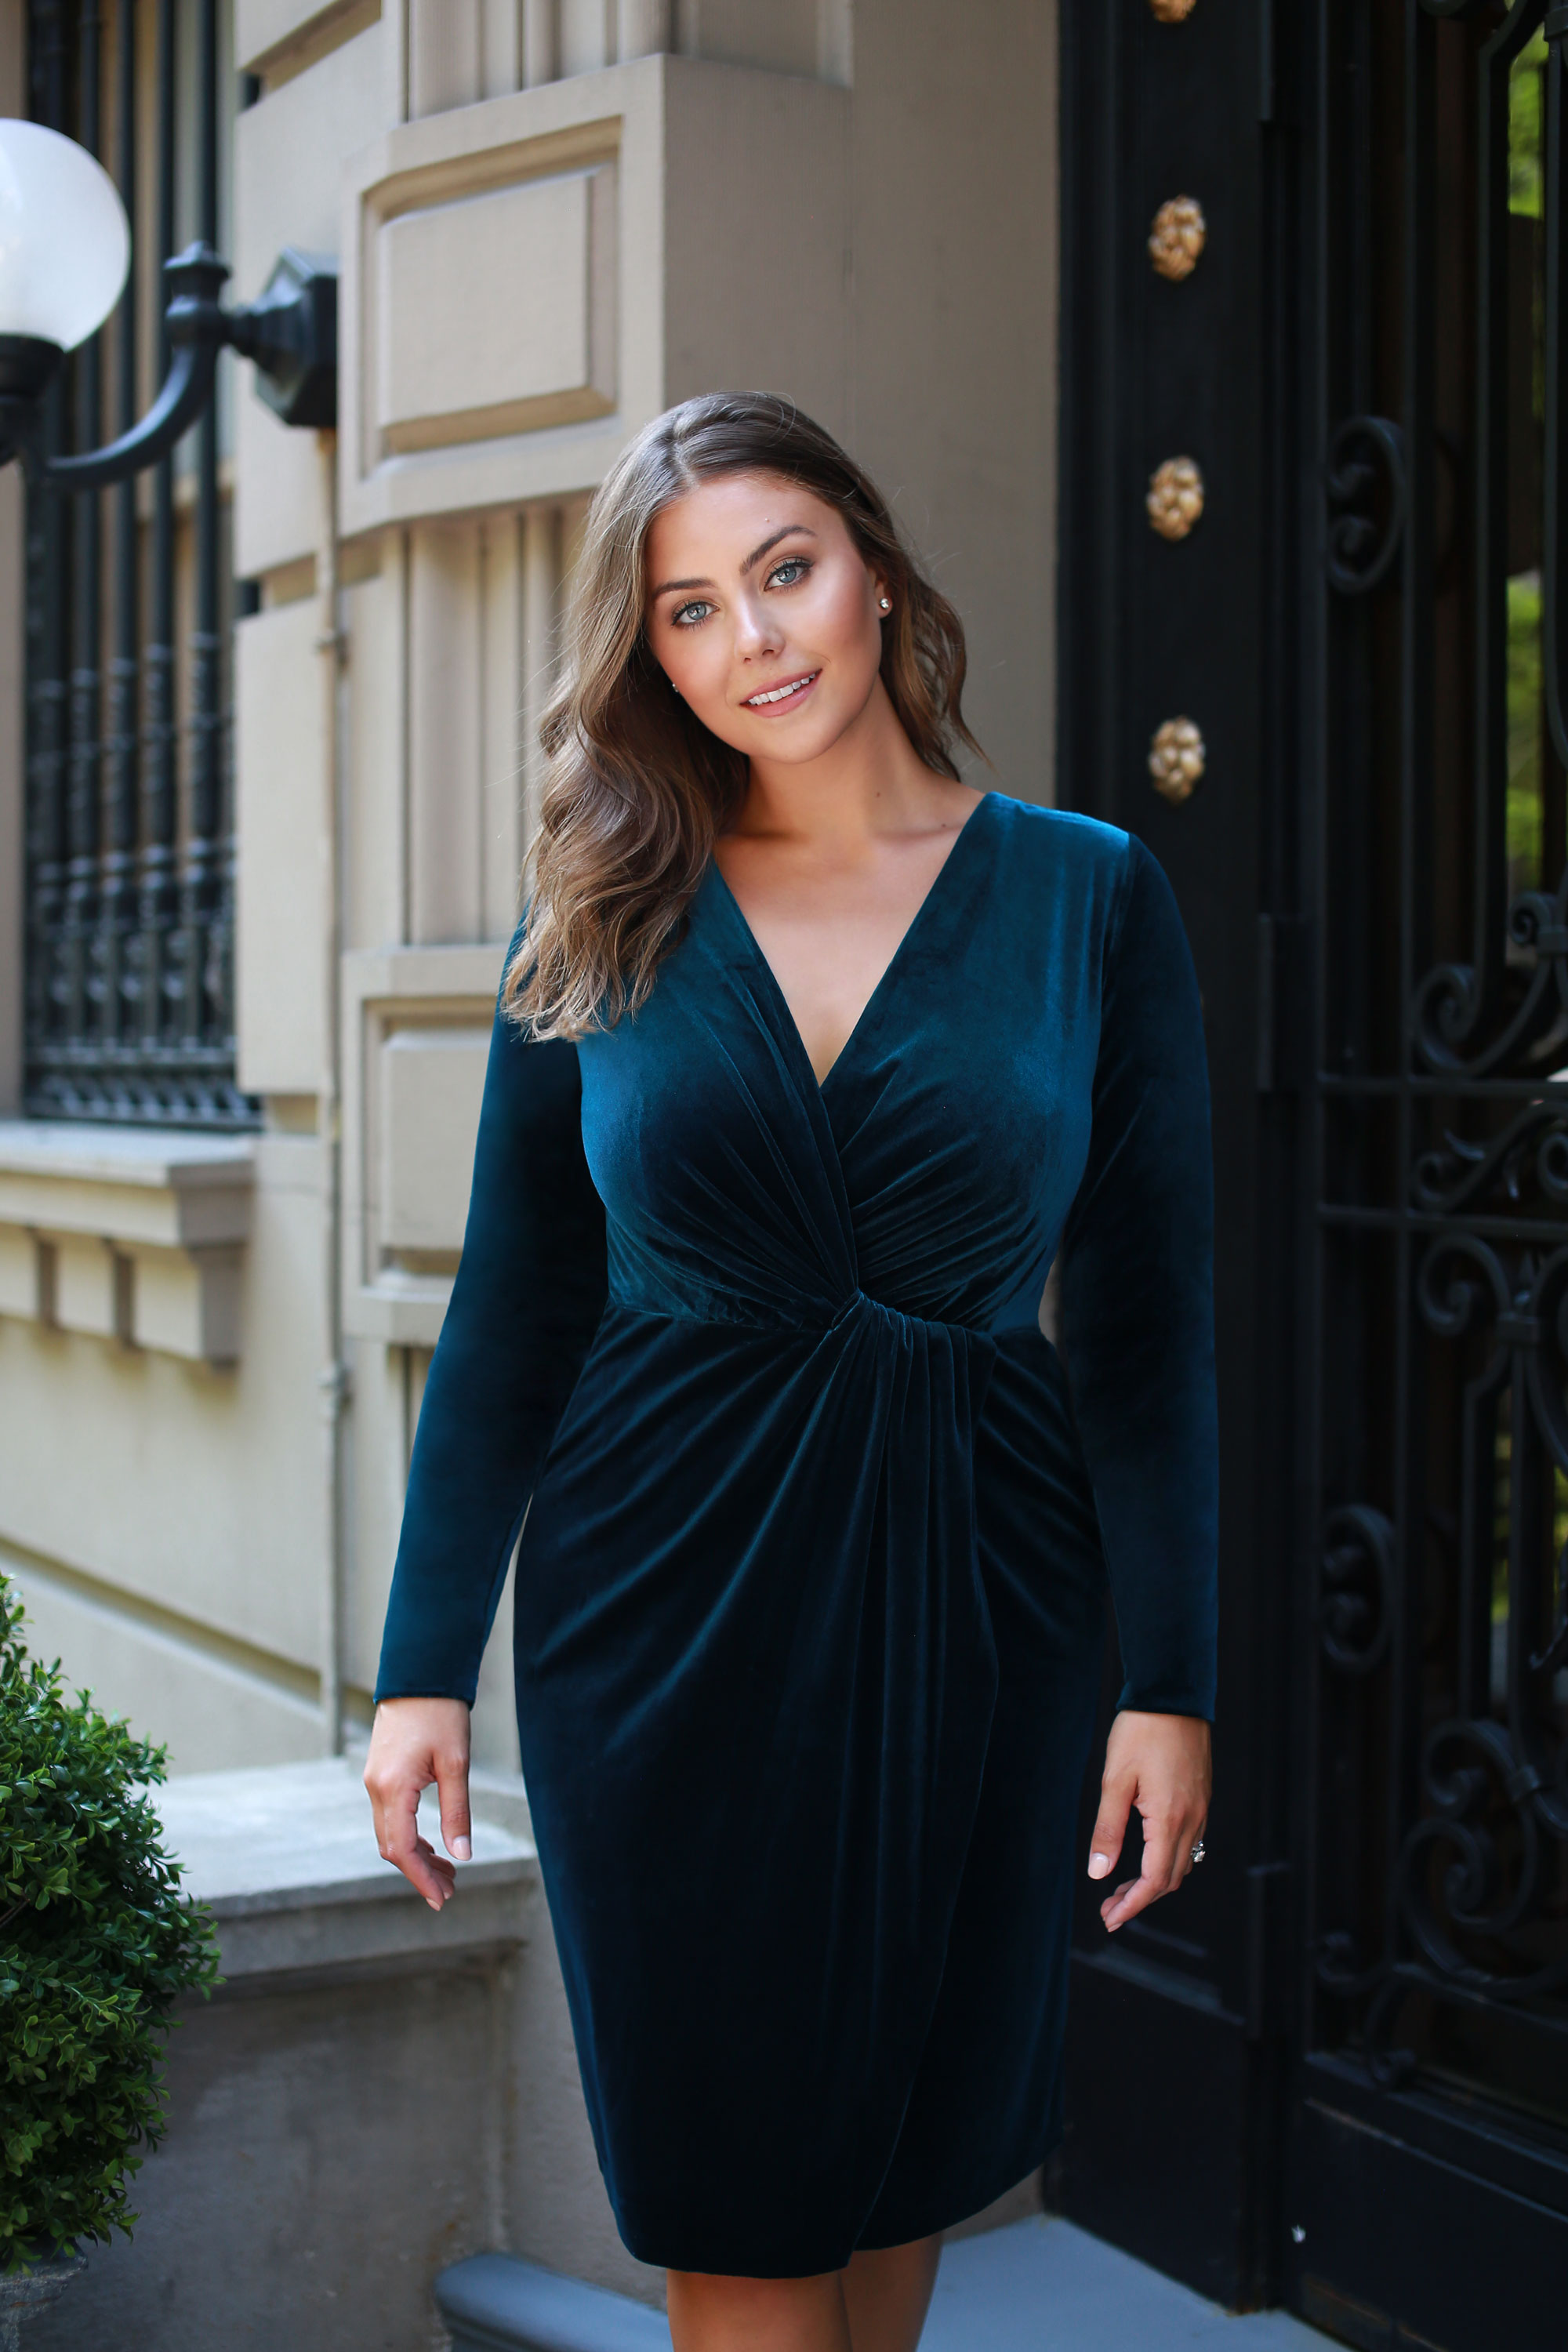 4. Fall Wedding - Best part of fall? Breezy weddings under autumn foliage… and the outfits! We can't get enough of this velvet mock-wrap finished with a flattering folded detail. Pull this dress out for fall's velvet debut, and get ready to reach for it all season long.